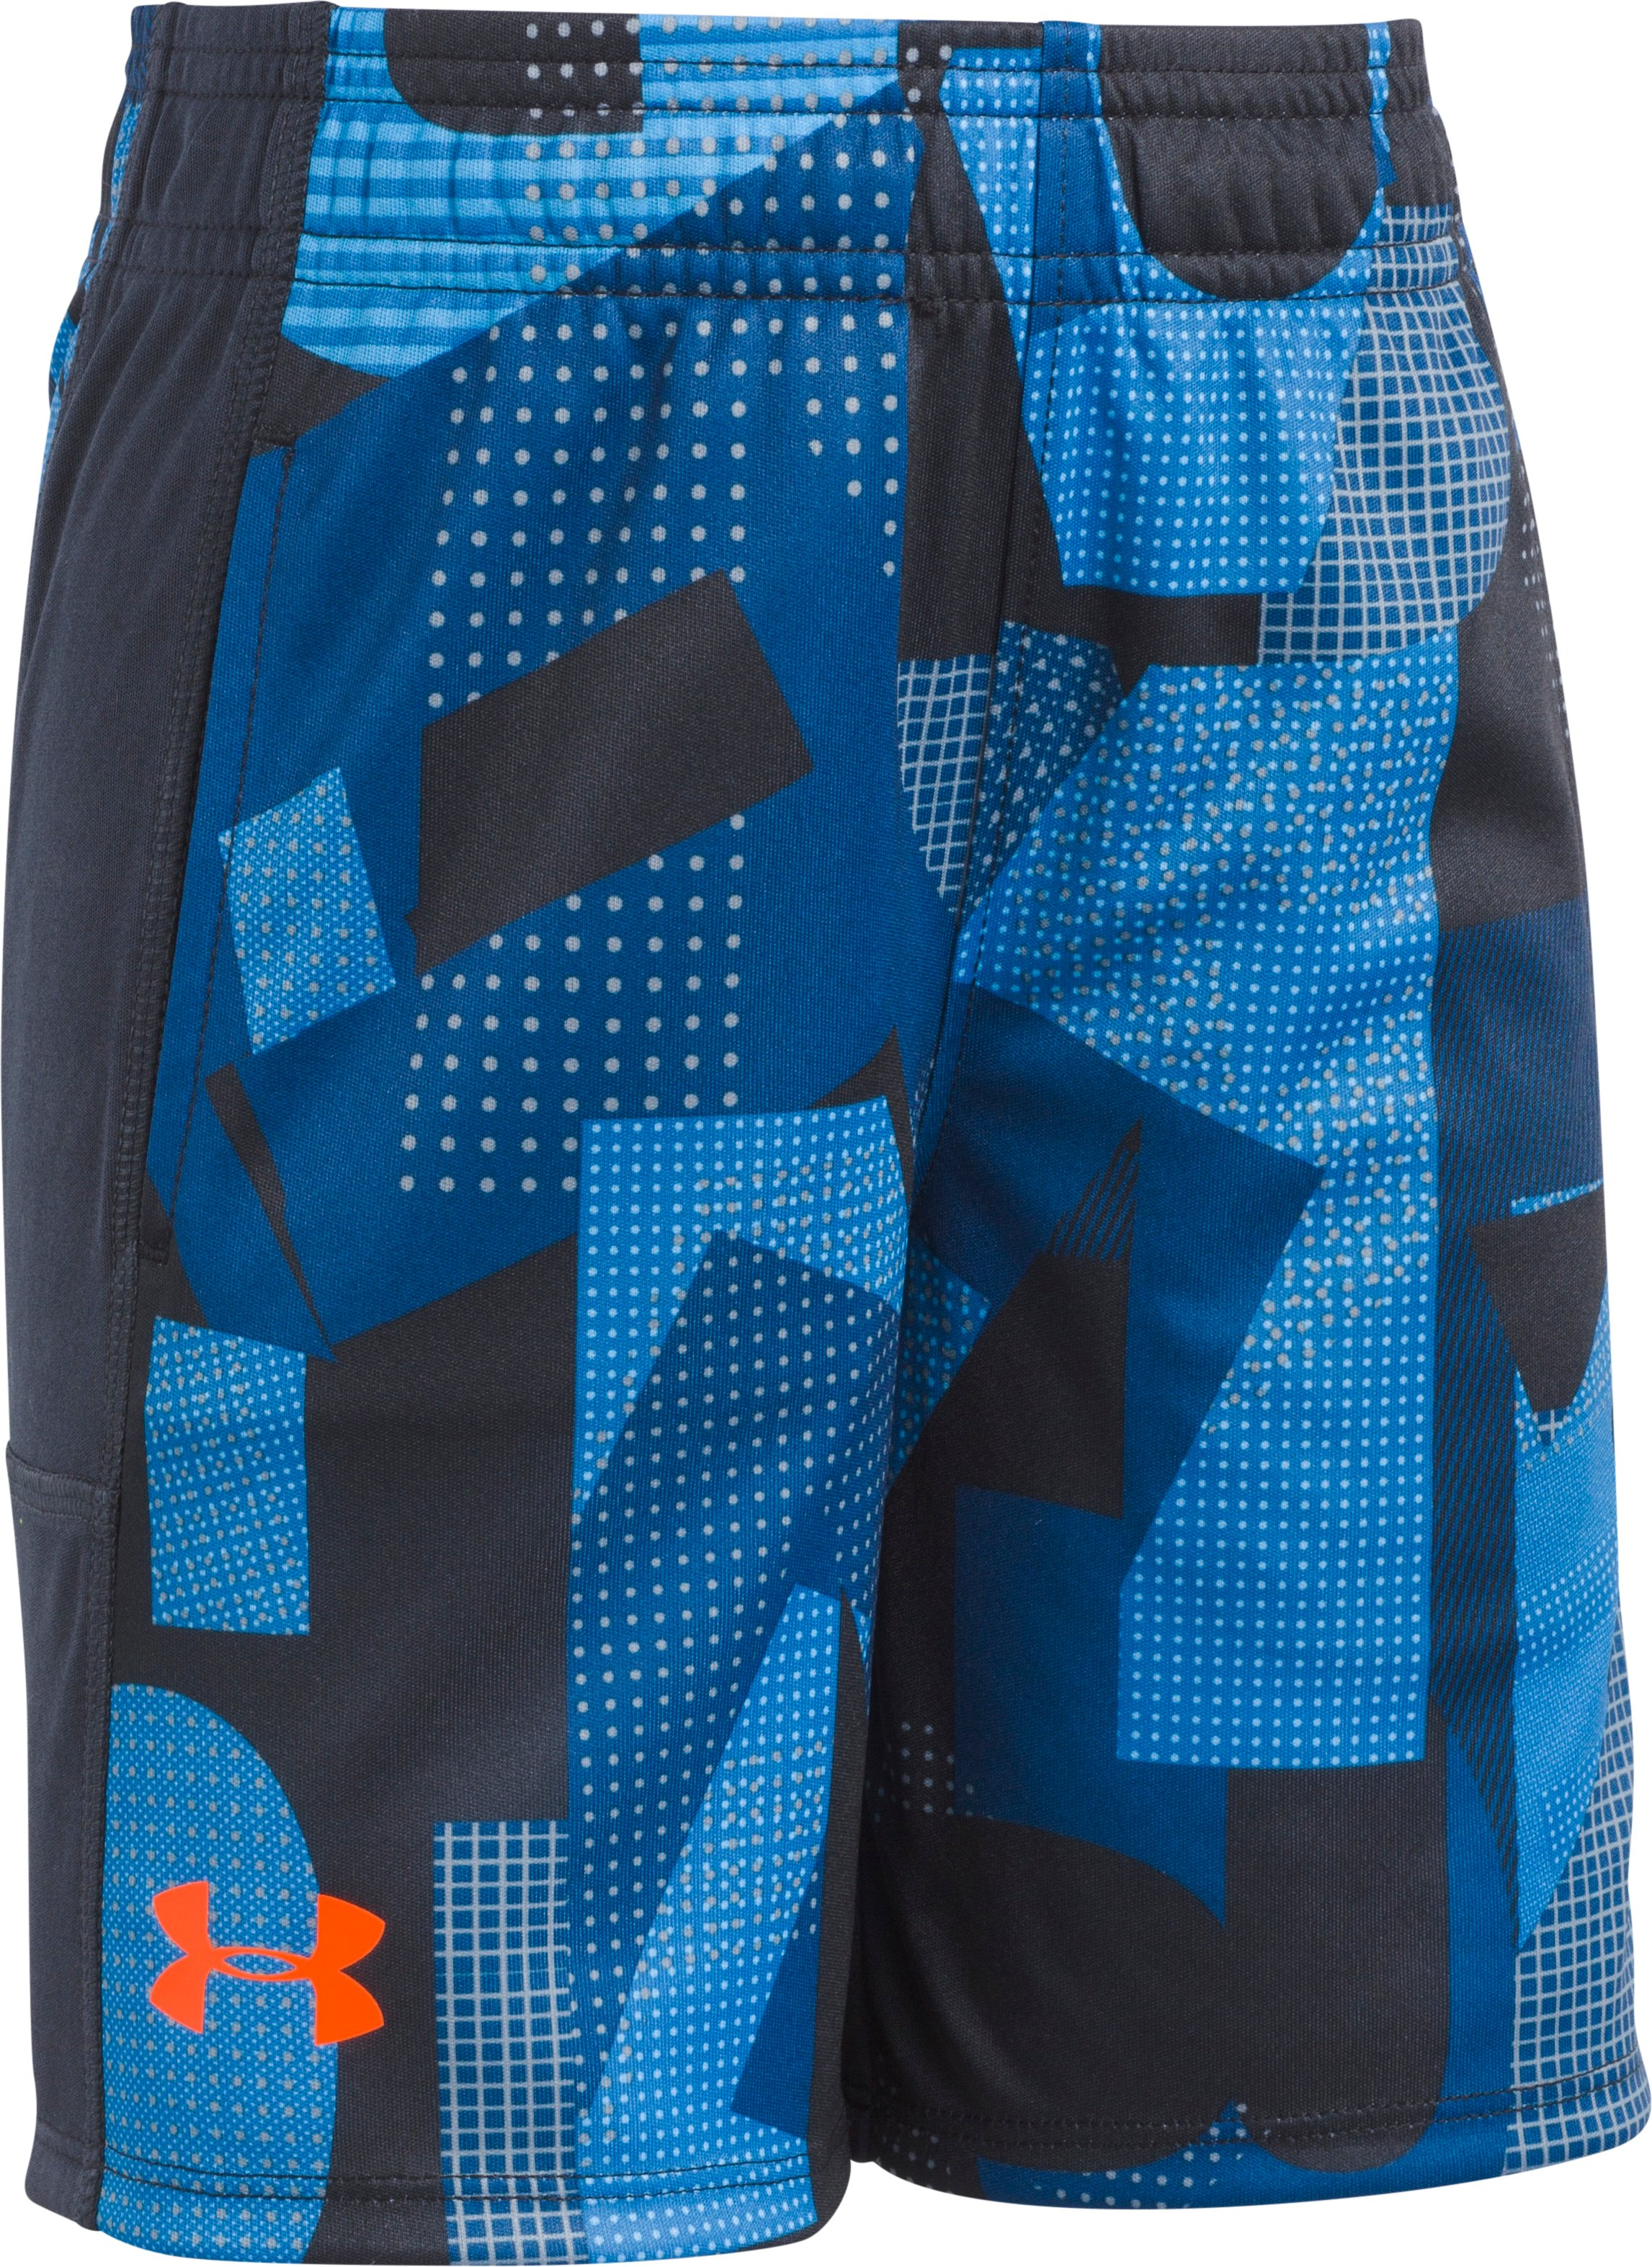 Alpha Stunt Short 2T-4T, Moroccan Blue, zoomed